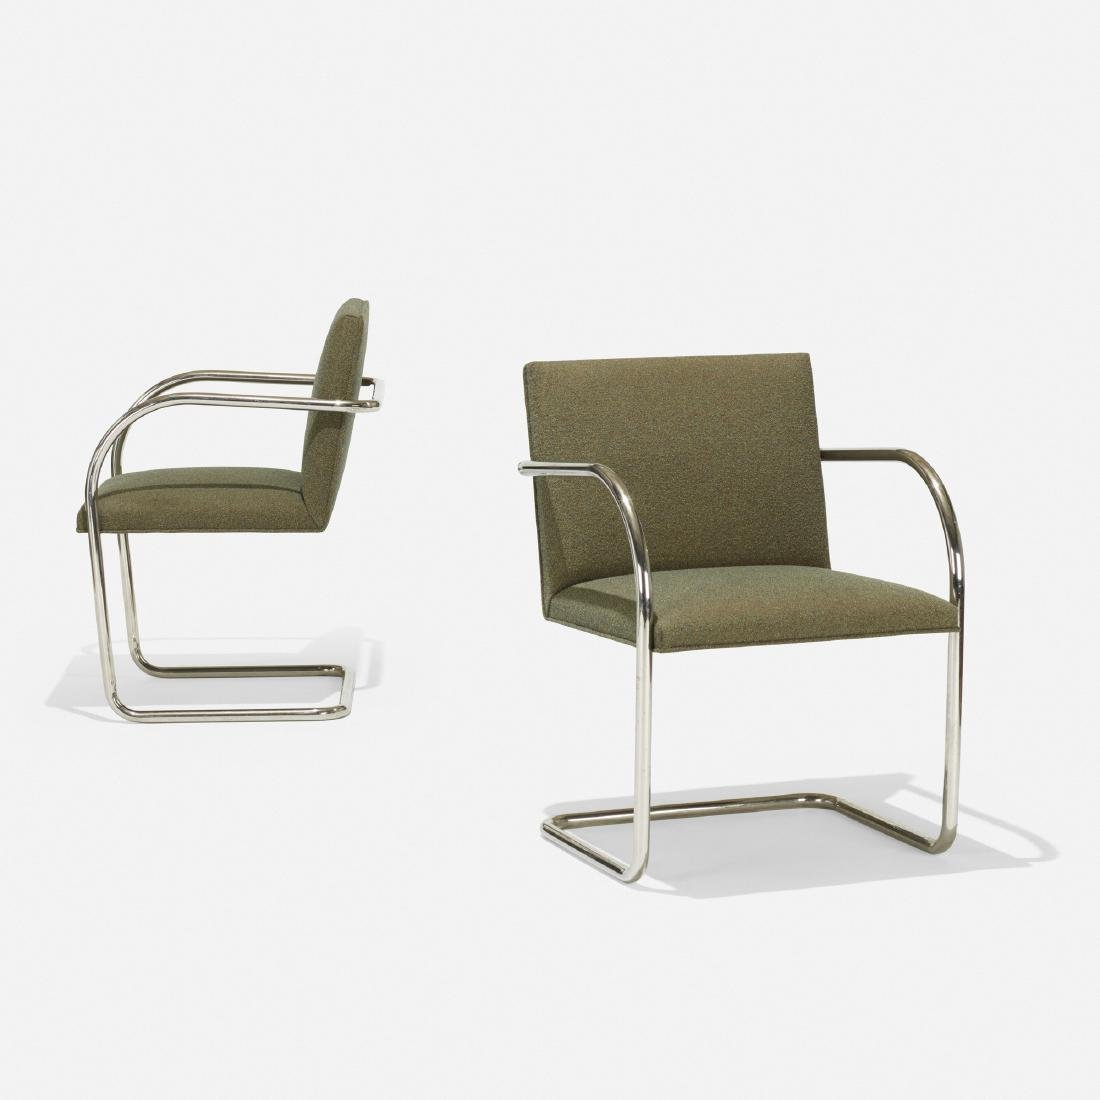 Ludwig Mies van der Rohe, Brno chairs, pair - 2